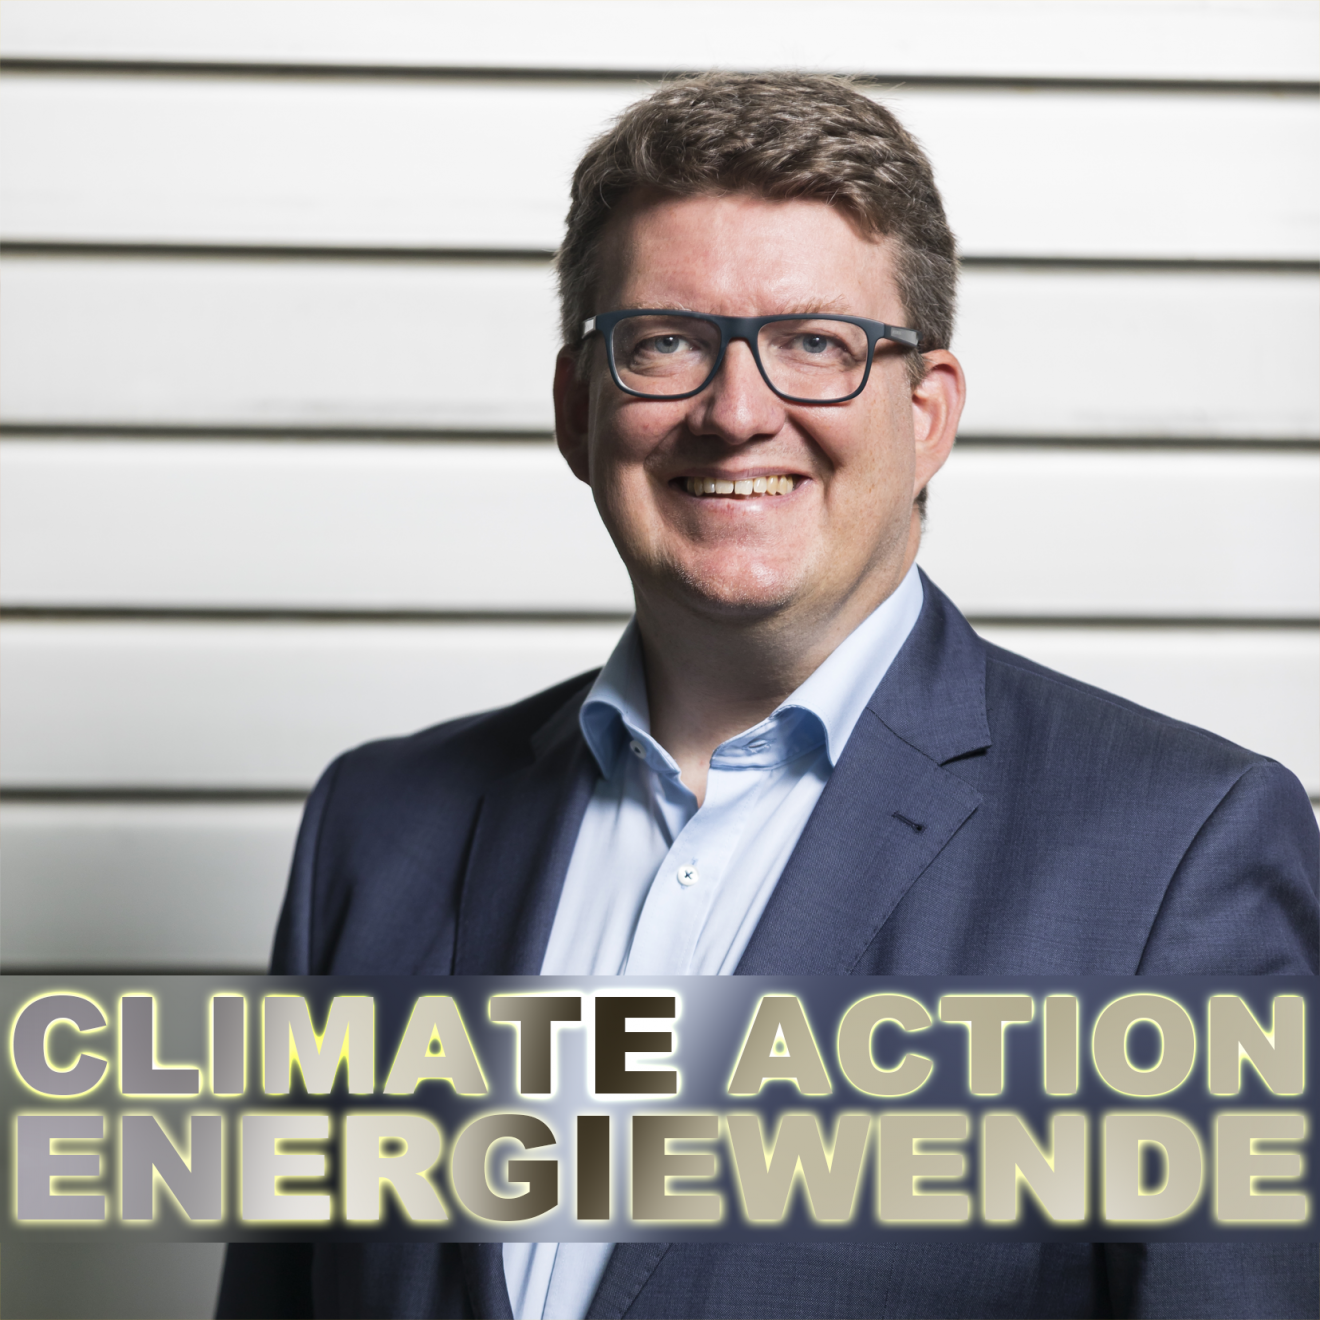 29 Climate Action: Energiewende - with Rüdiger Eichel